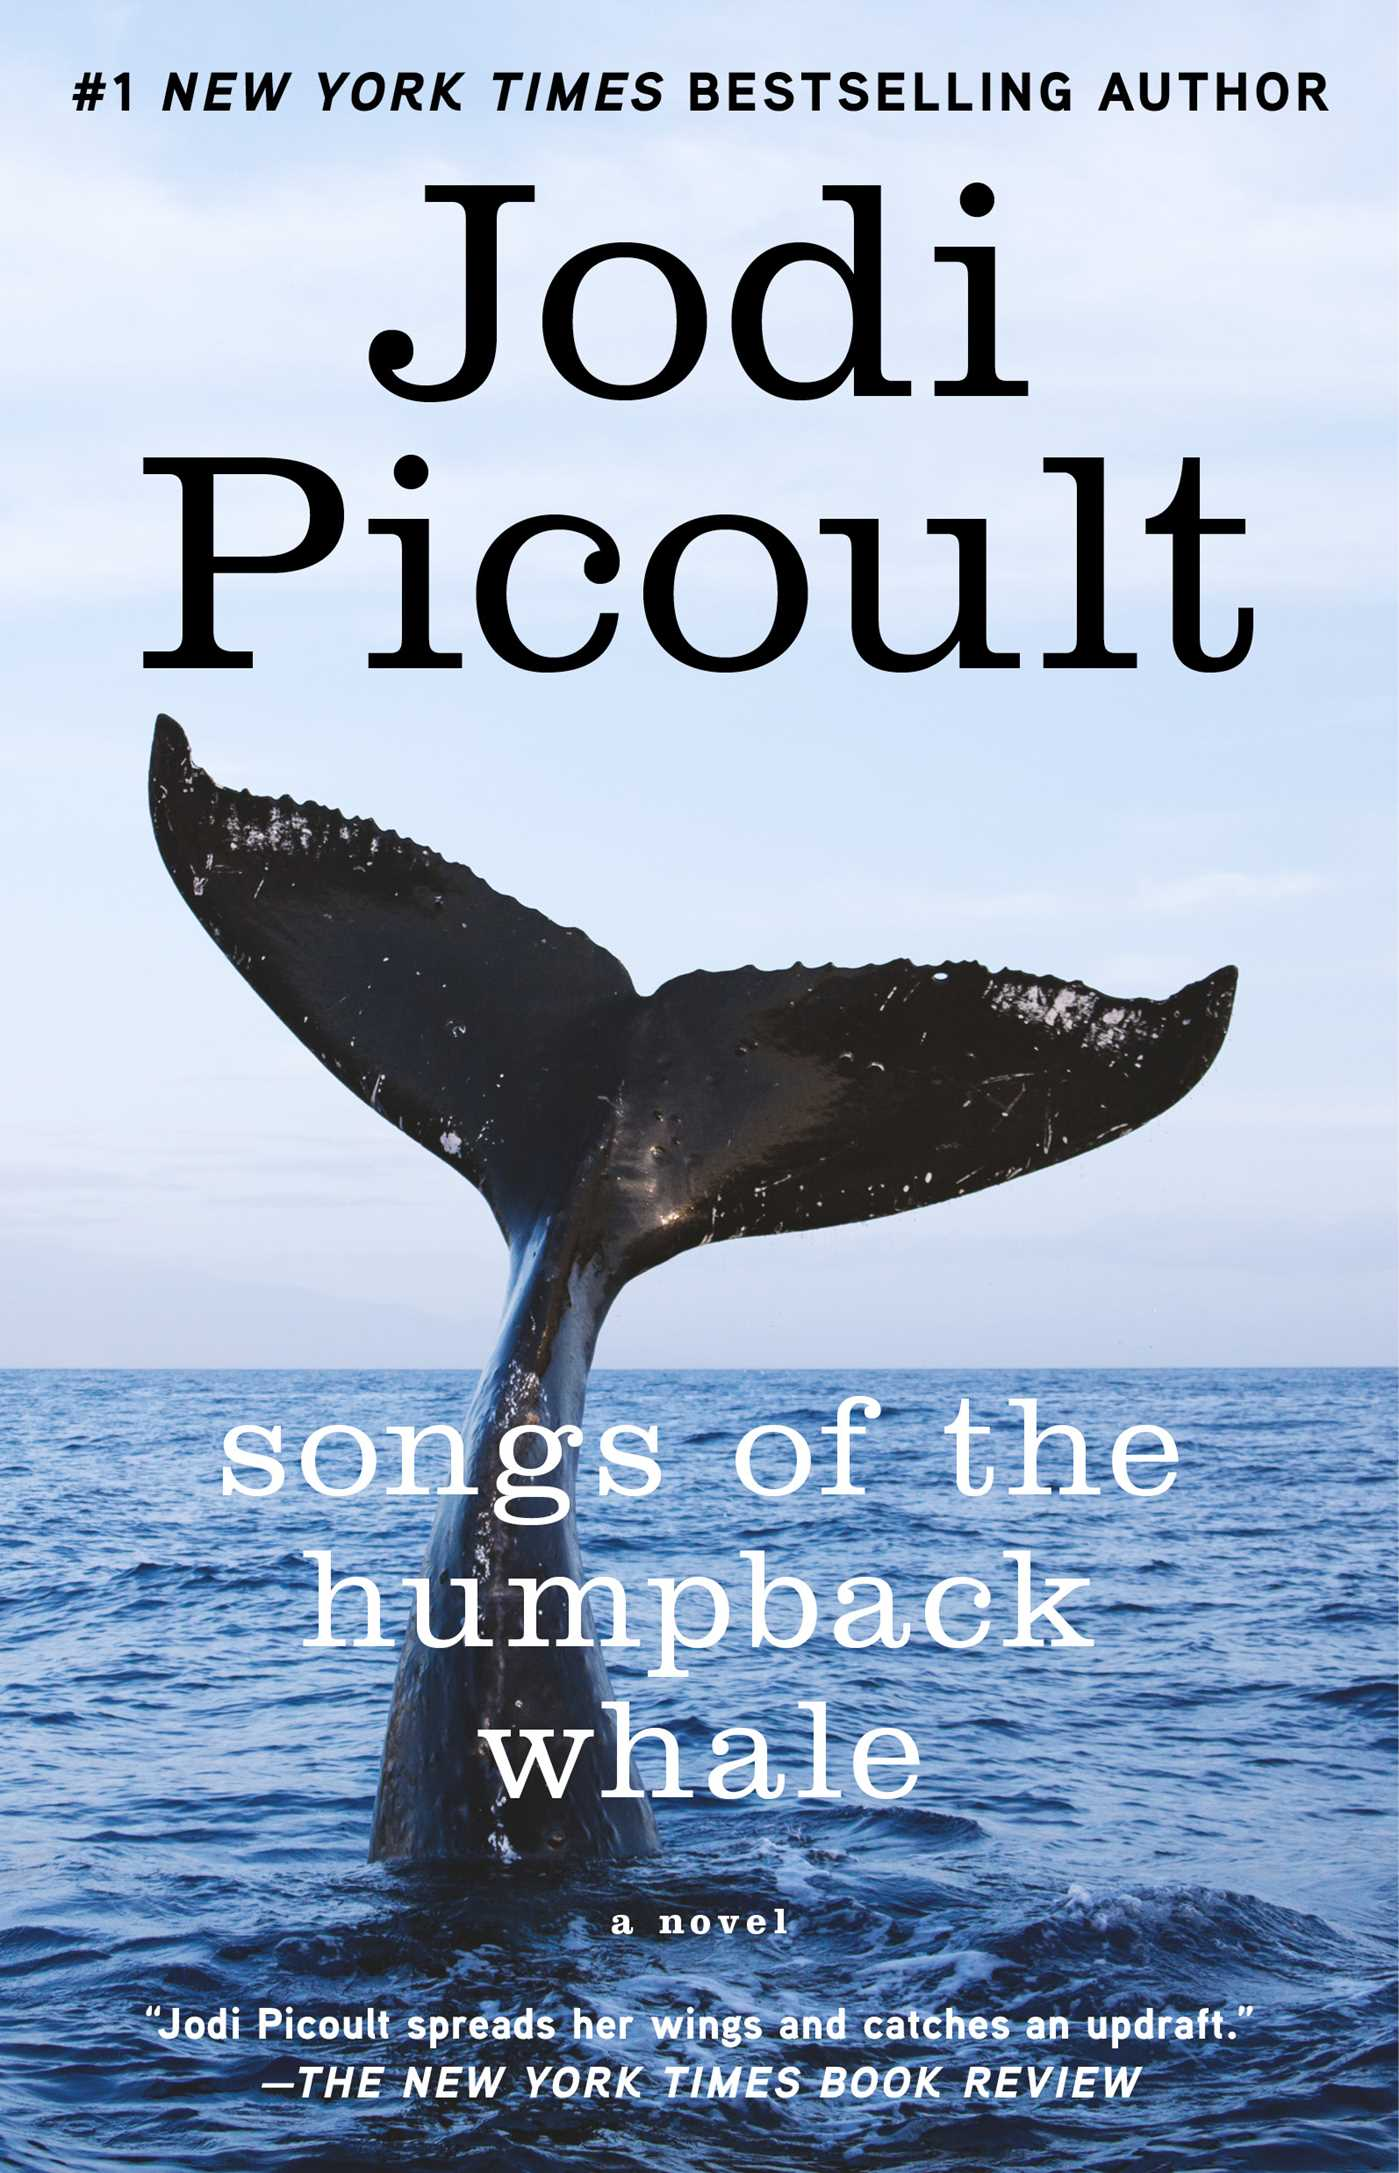 Songs of the humpback whale 9780743439848 hr